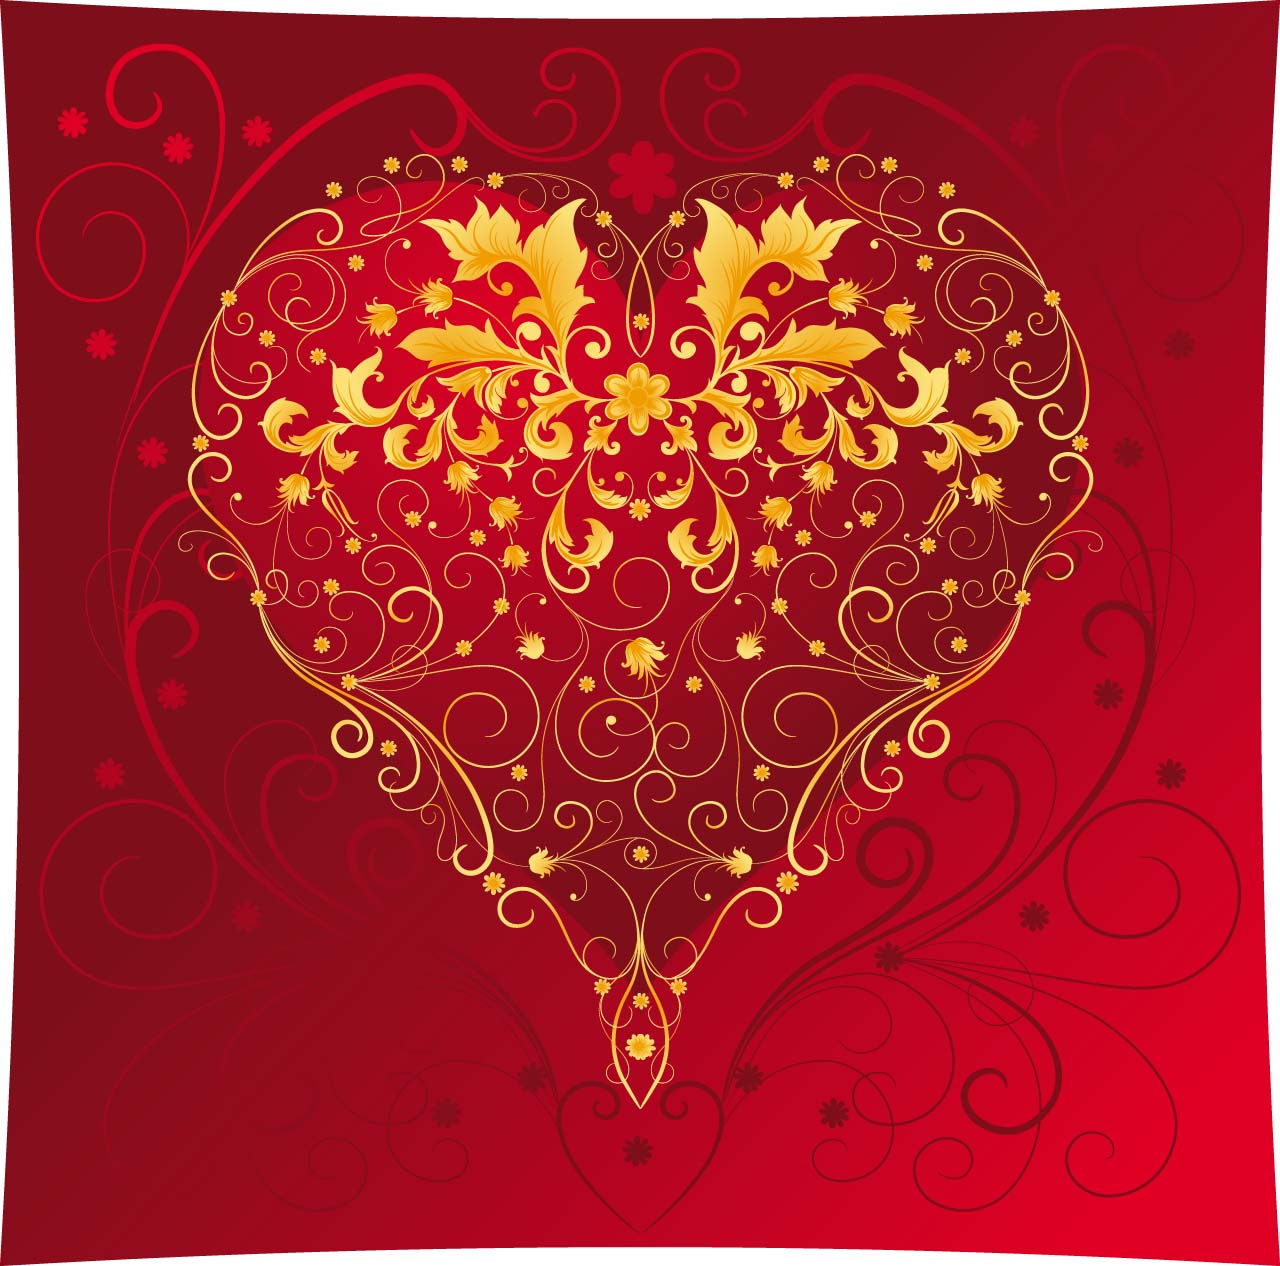 Ornate red heart vector